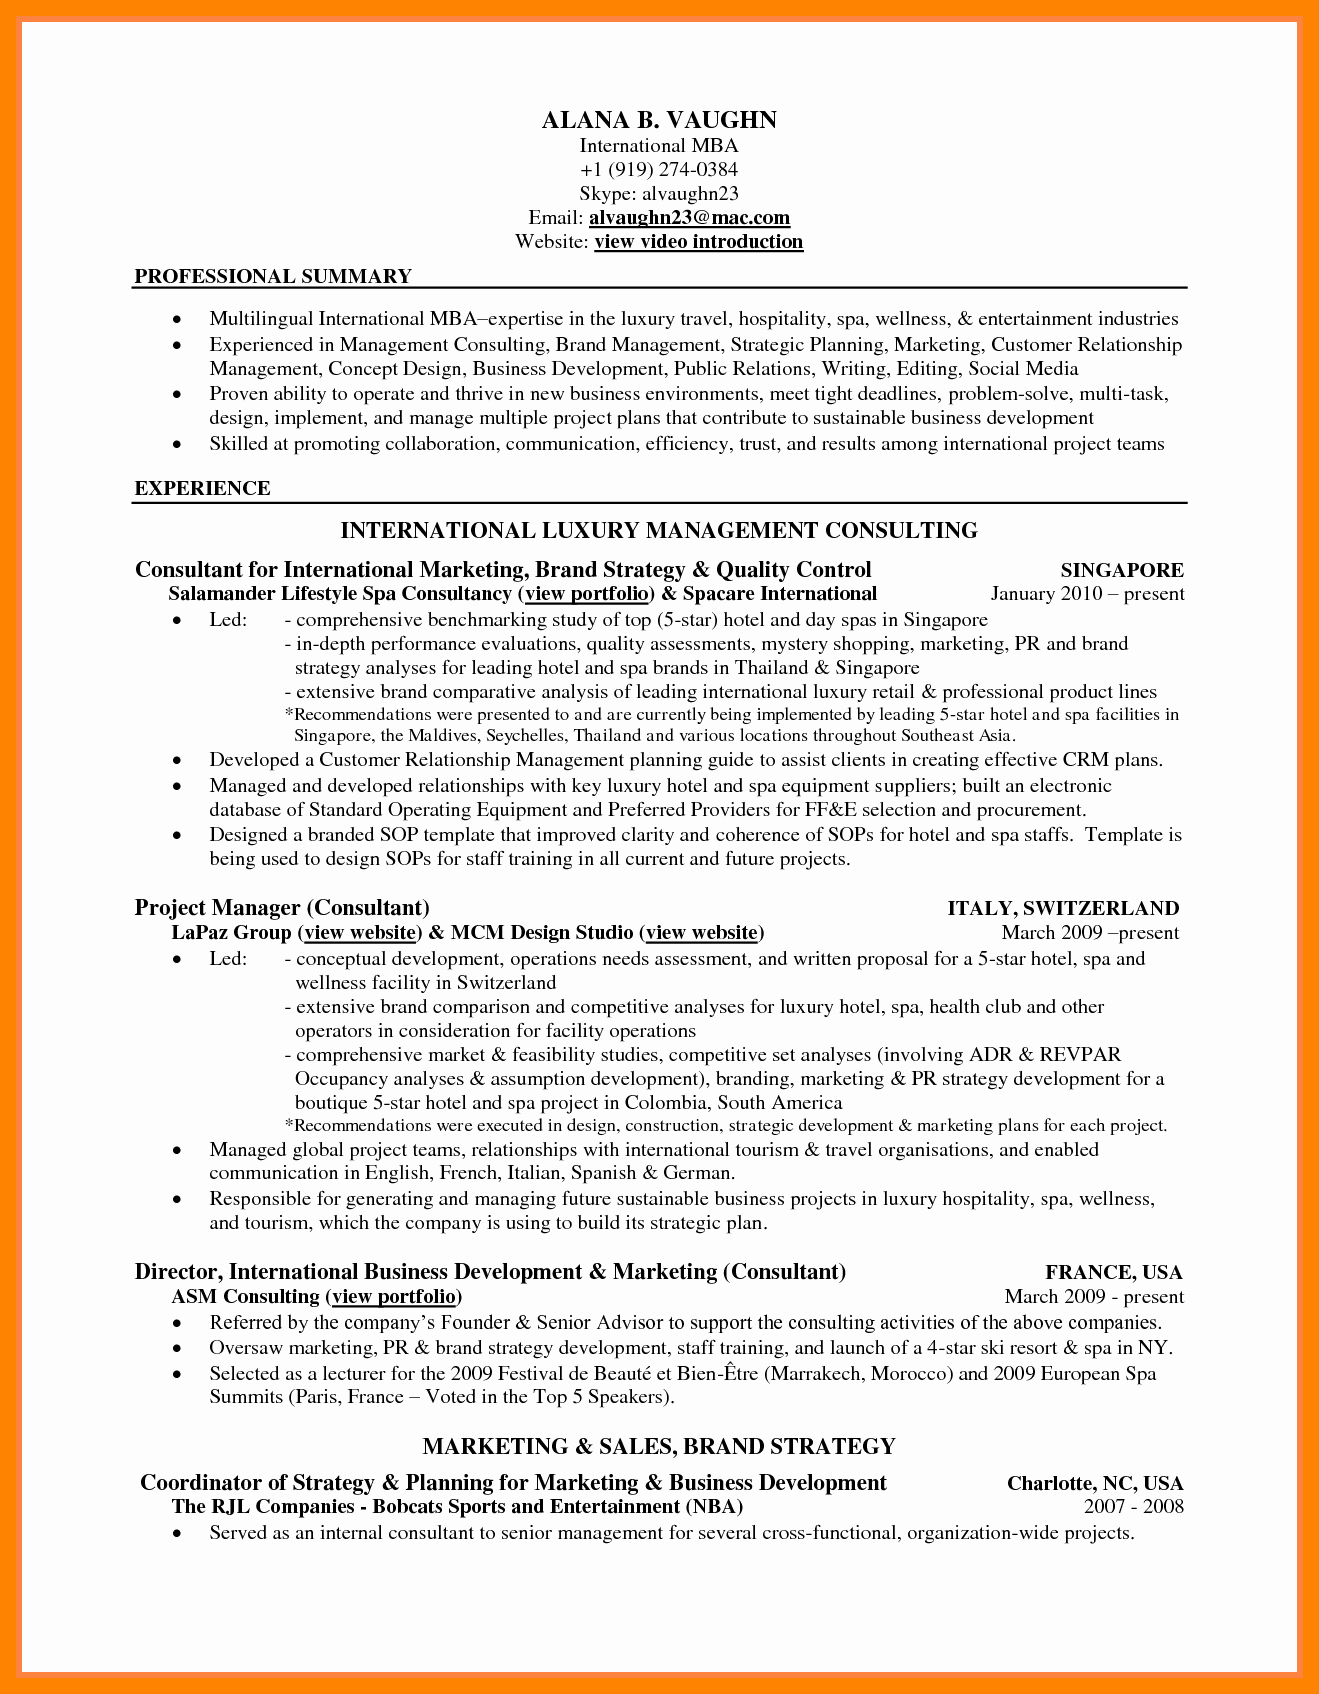 Consulting Report Template Microsoft Word Inspirational Consultant Report Template Writing About Ideas for Short